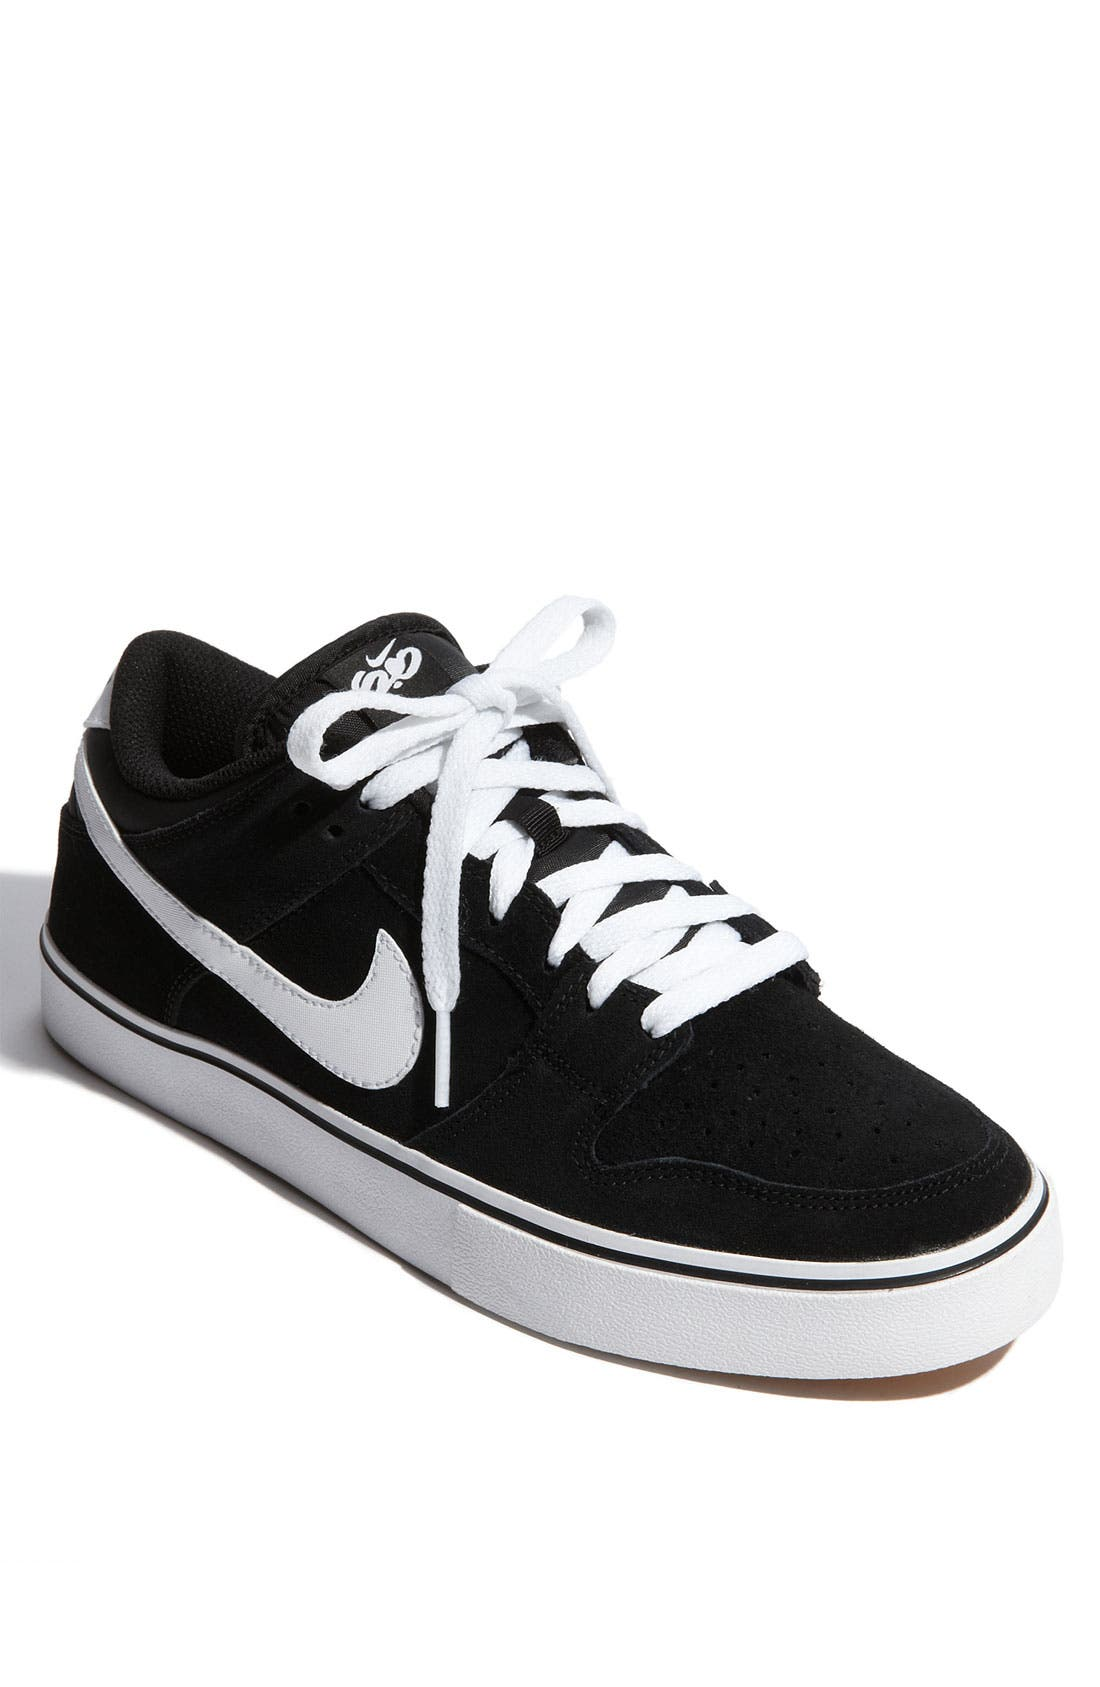 Main Image - Nike '6.0 Dunk Low LR' Sneaker (Men)